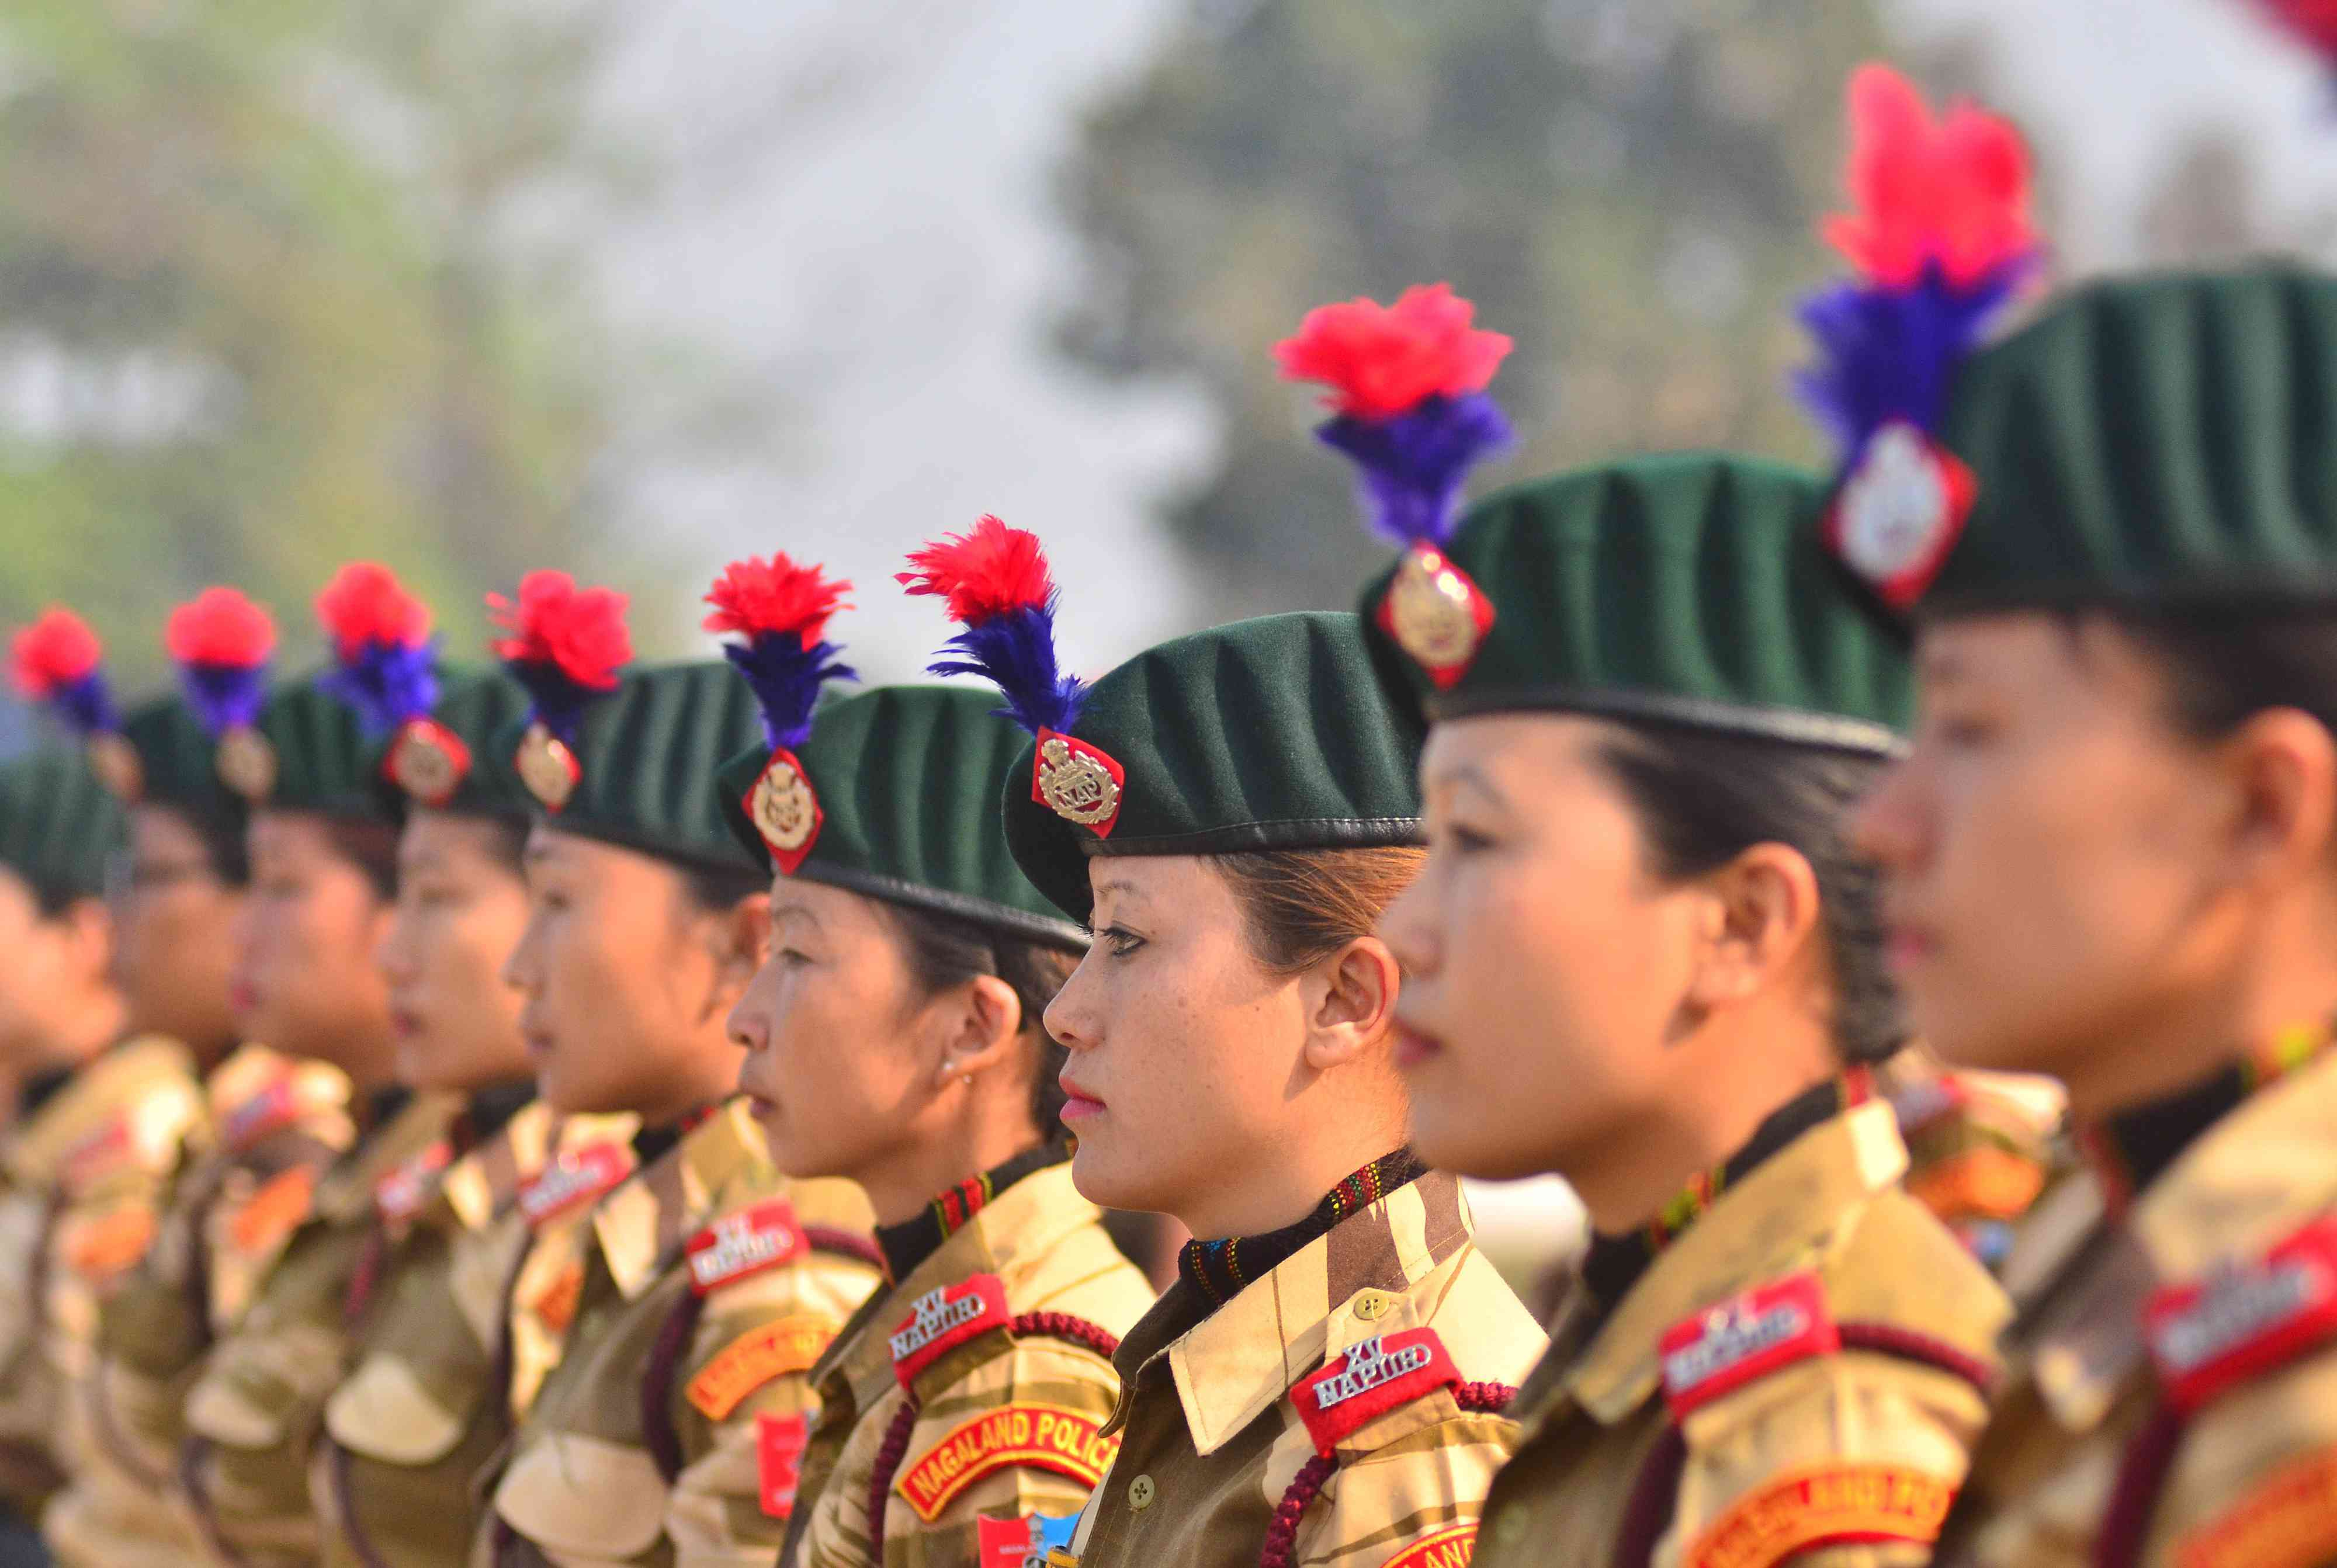 Women contingents from the India Reserve Battalion of the Nagaland Arm Police during Republic Day celebrations in Dimapur (Photo credit: AFP)